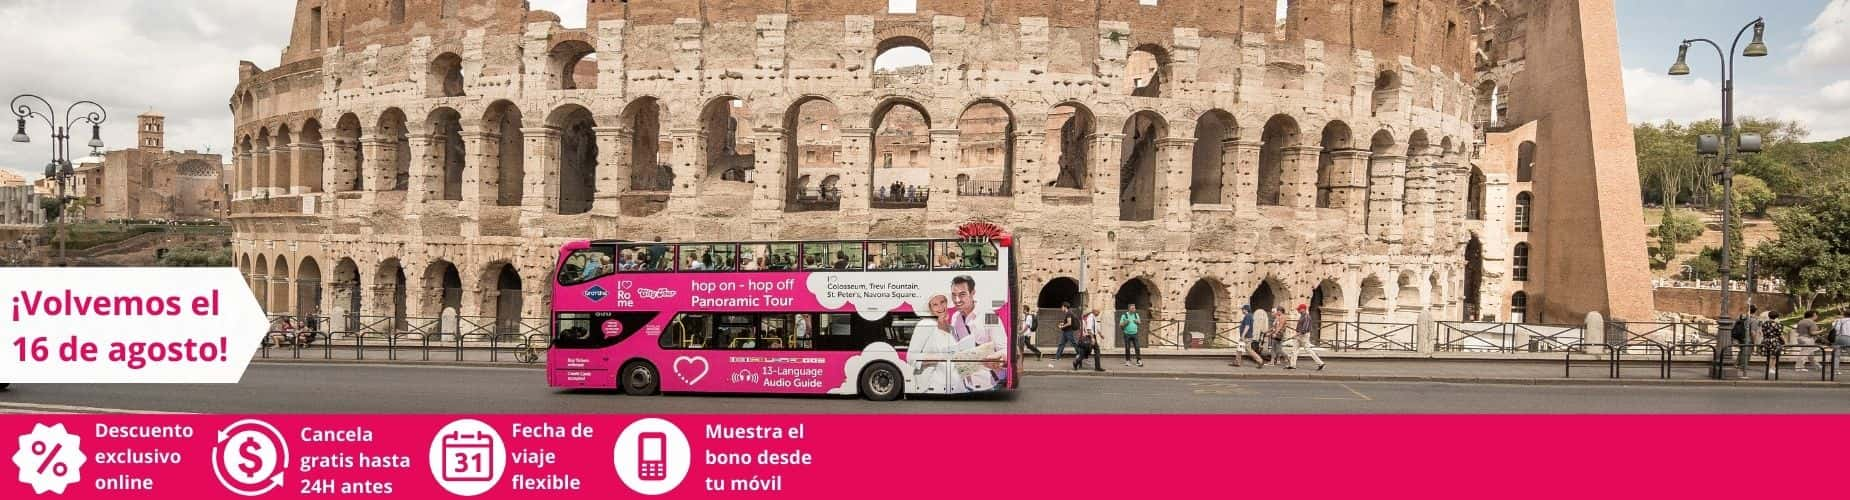 Oferta anticipada bus turistico Hop On Hop Off Roma